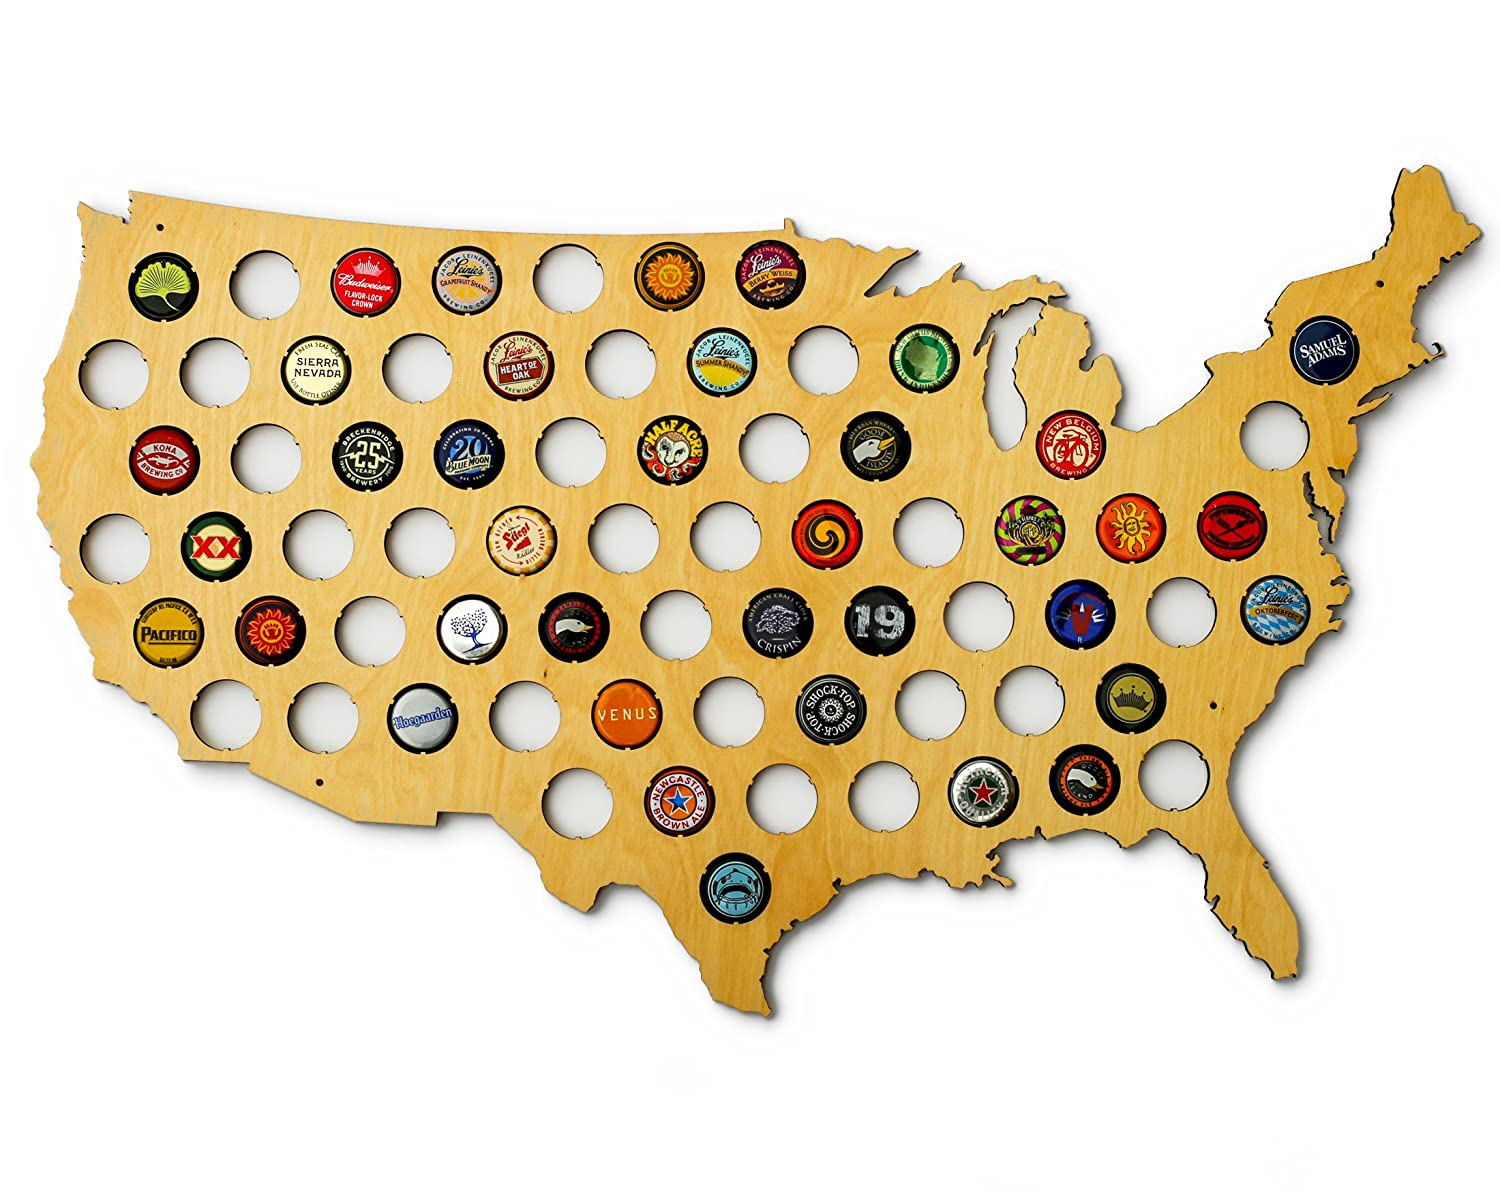 Amazoncom USA Beer Cap Map Ultra Detailed Glossy Wood Bottle - Us beer cap map